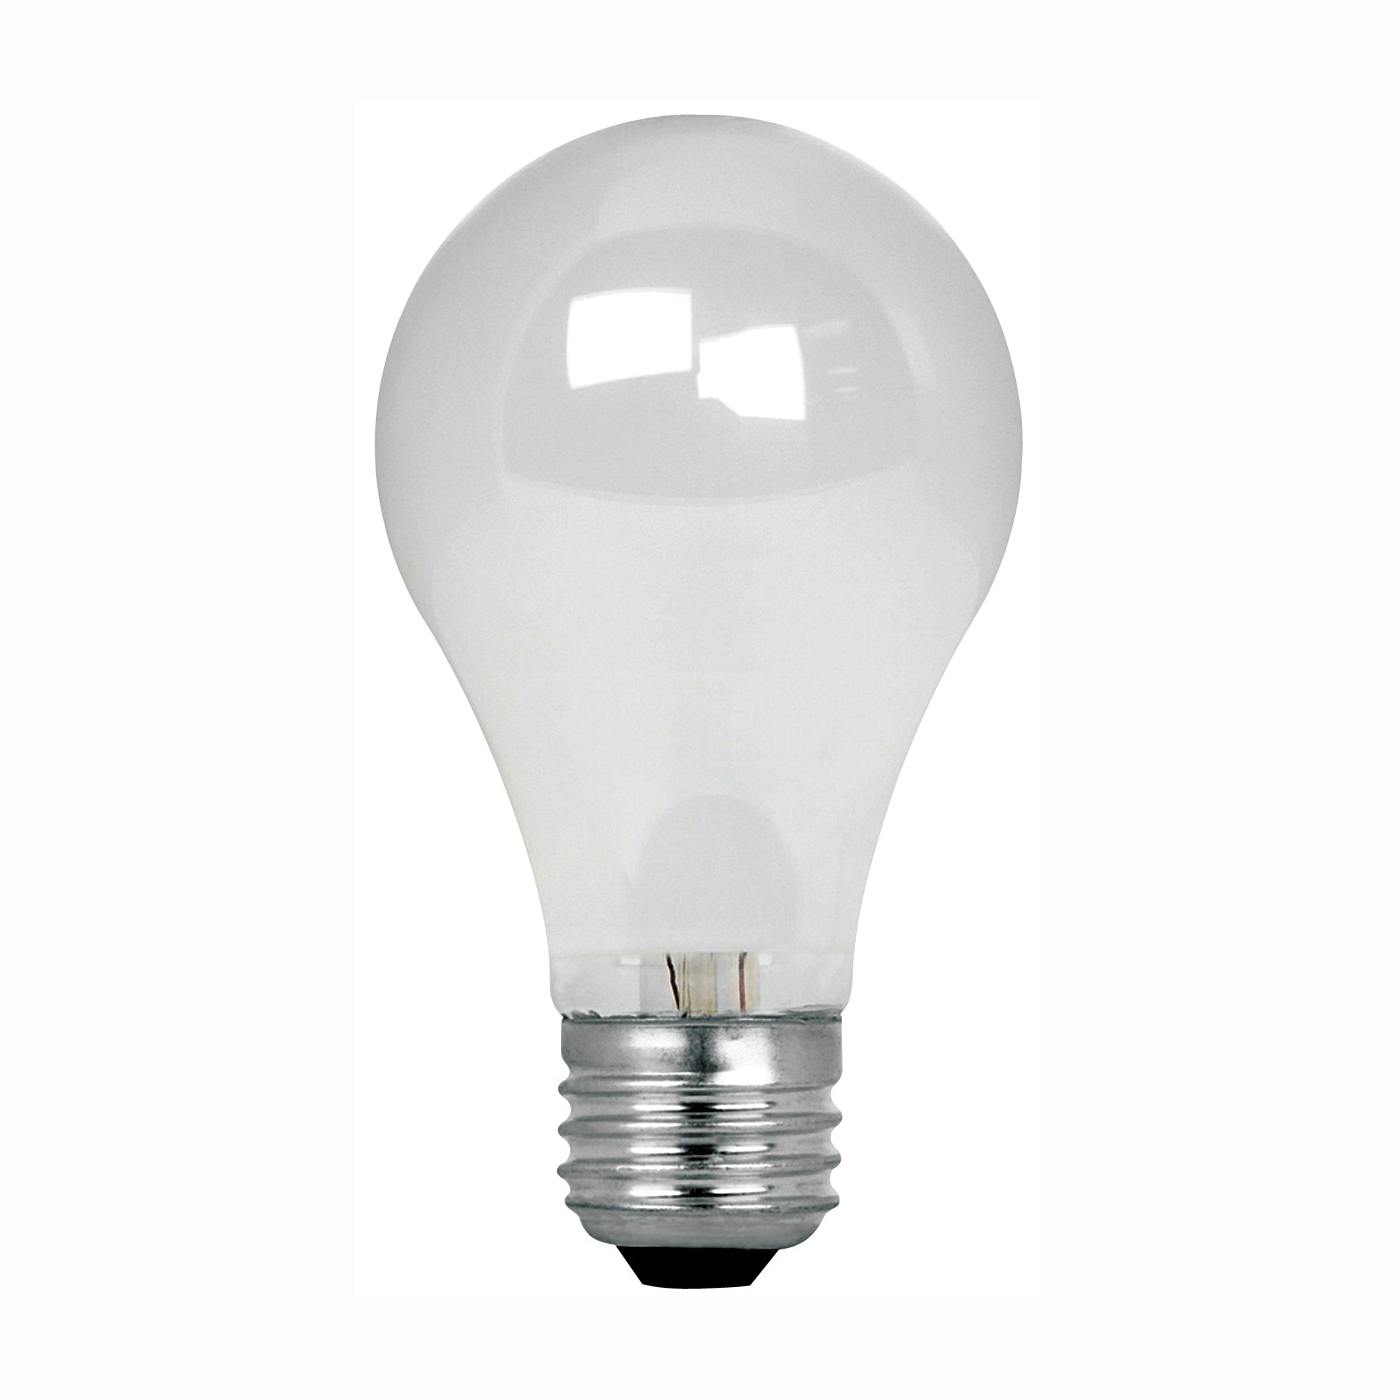 Picture of Feit Electric Q53A/W/4/RP Halogen Lamp, 53 W, Medium E26 Lamp Base, A19 Lamp, Soft White Light, 1050 Lumens